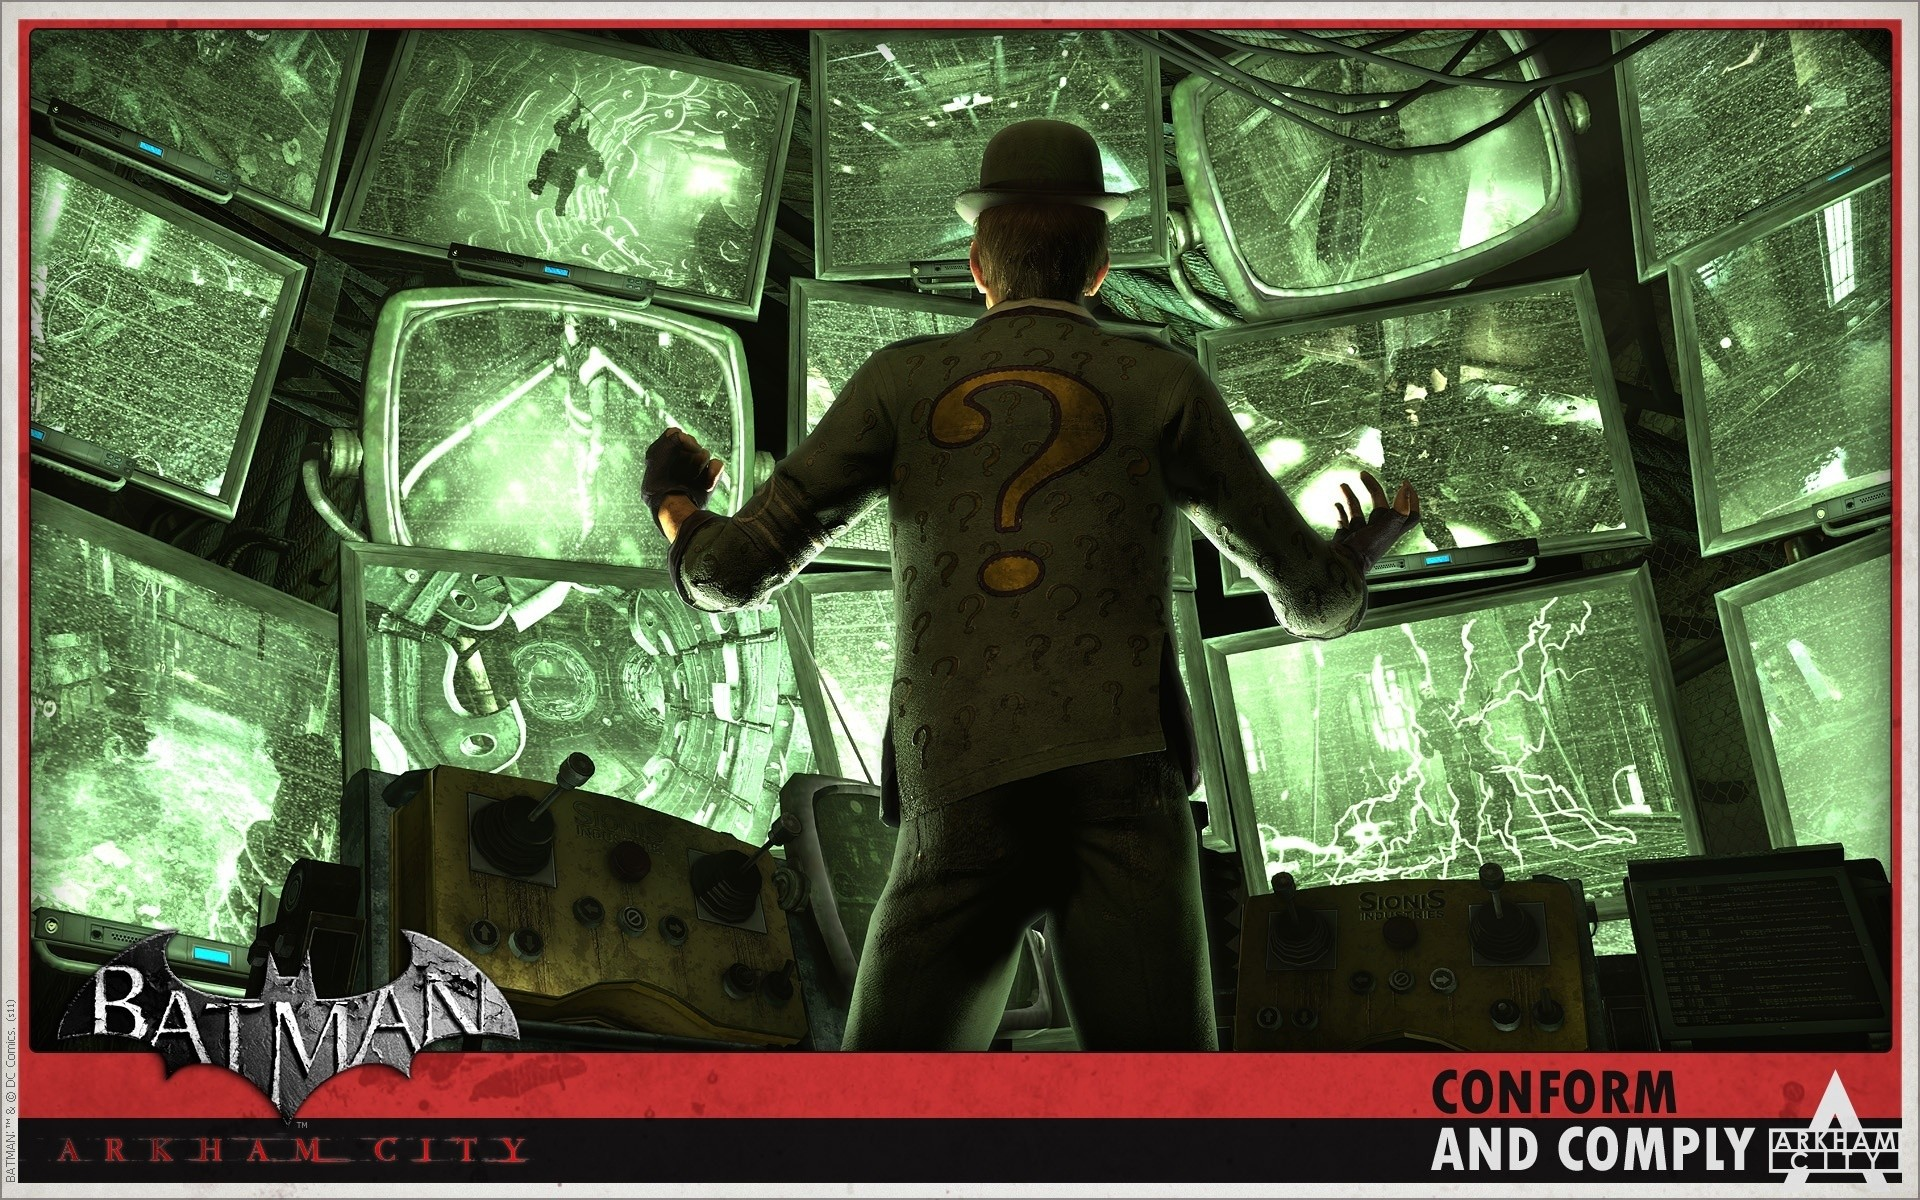 Batman Arkham City images The Riddler HD wallpaper and background photos